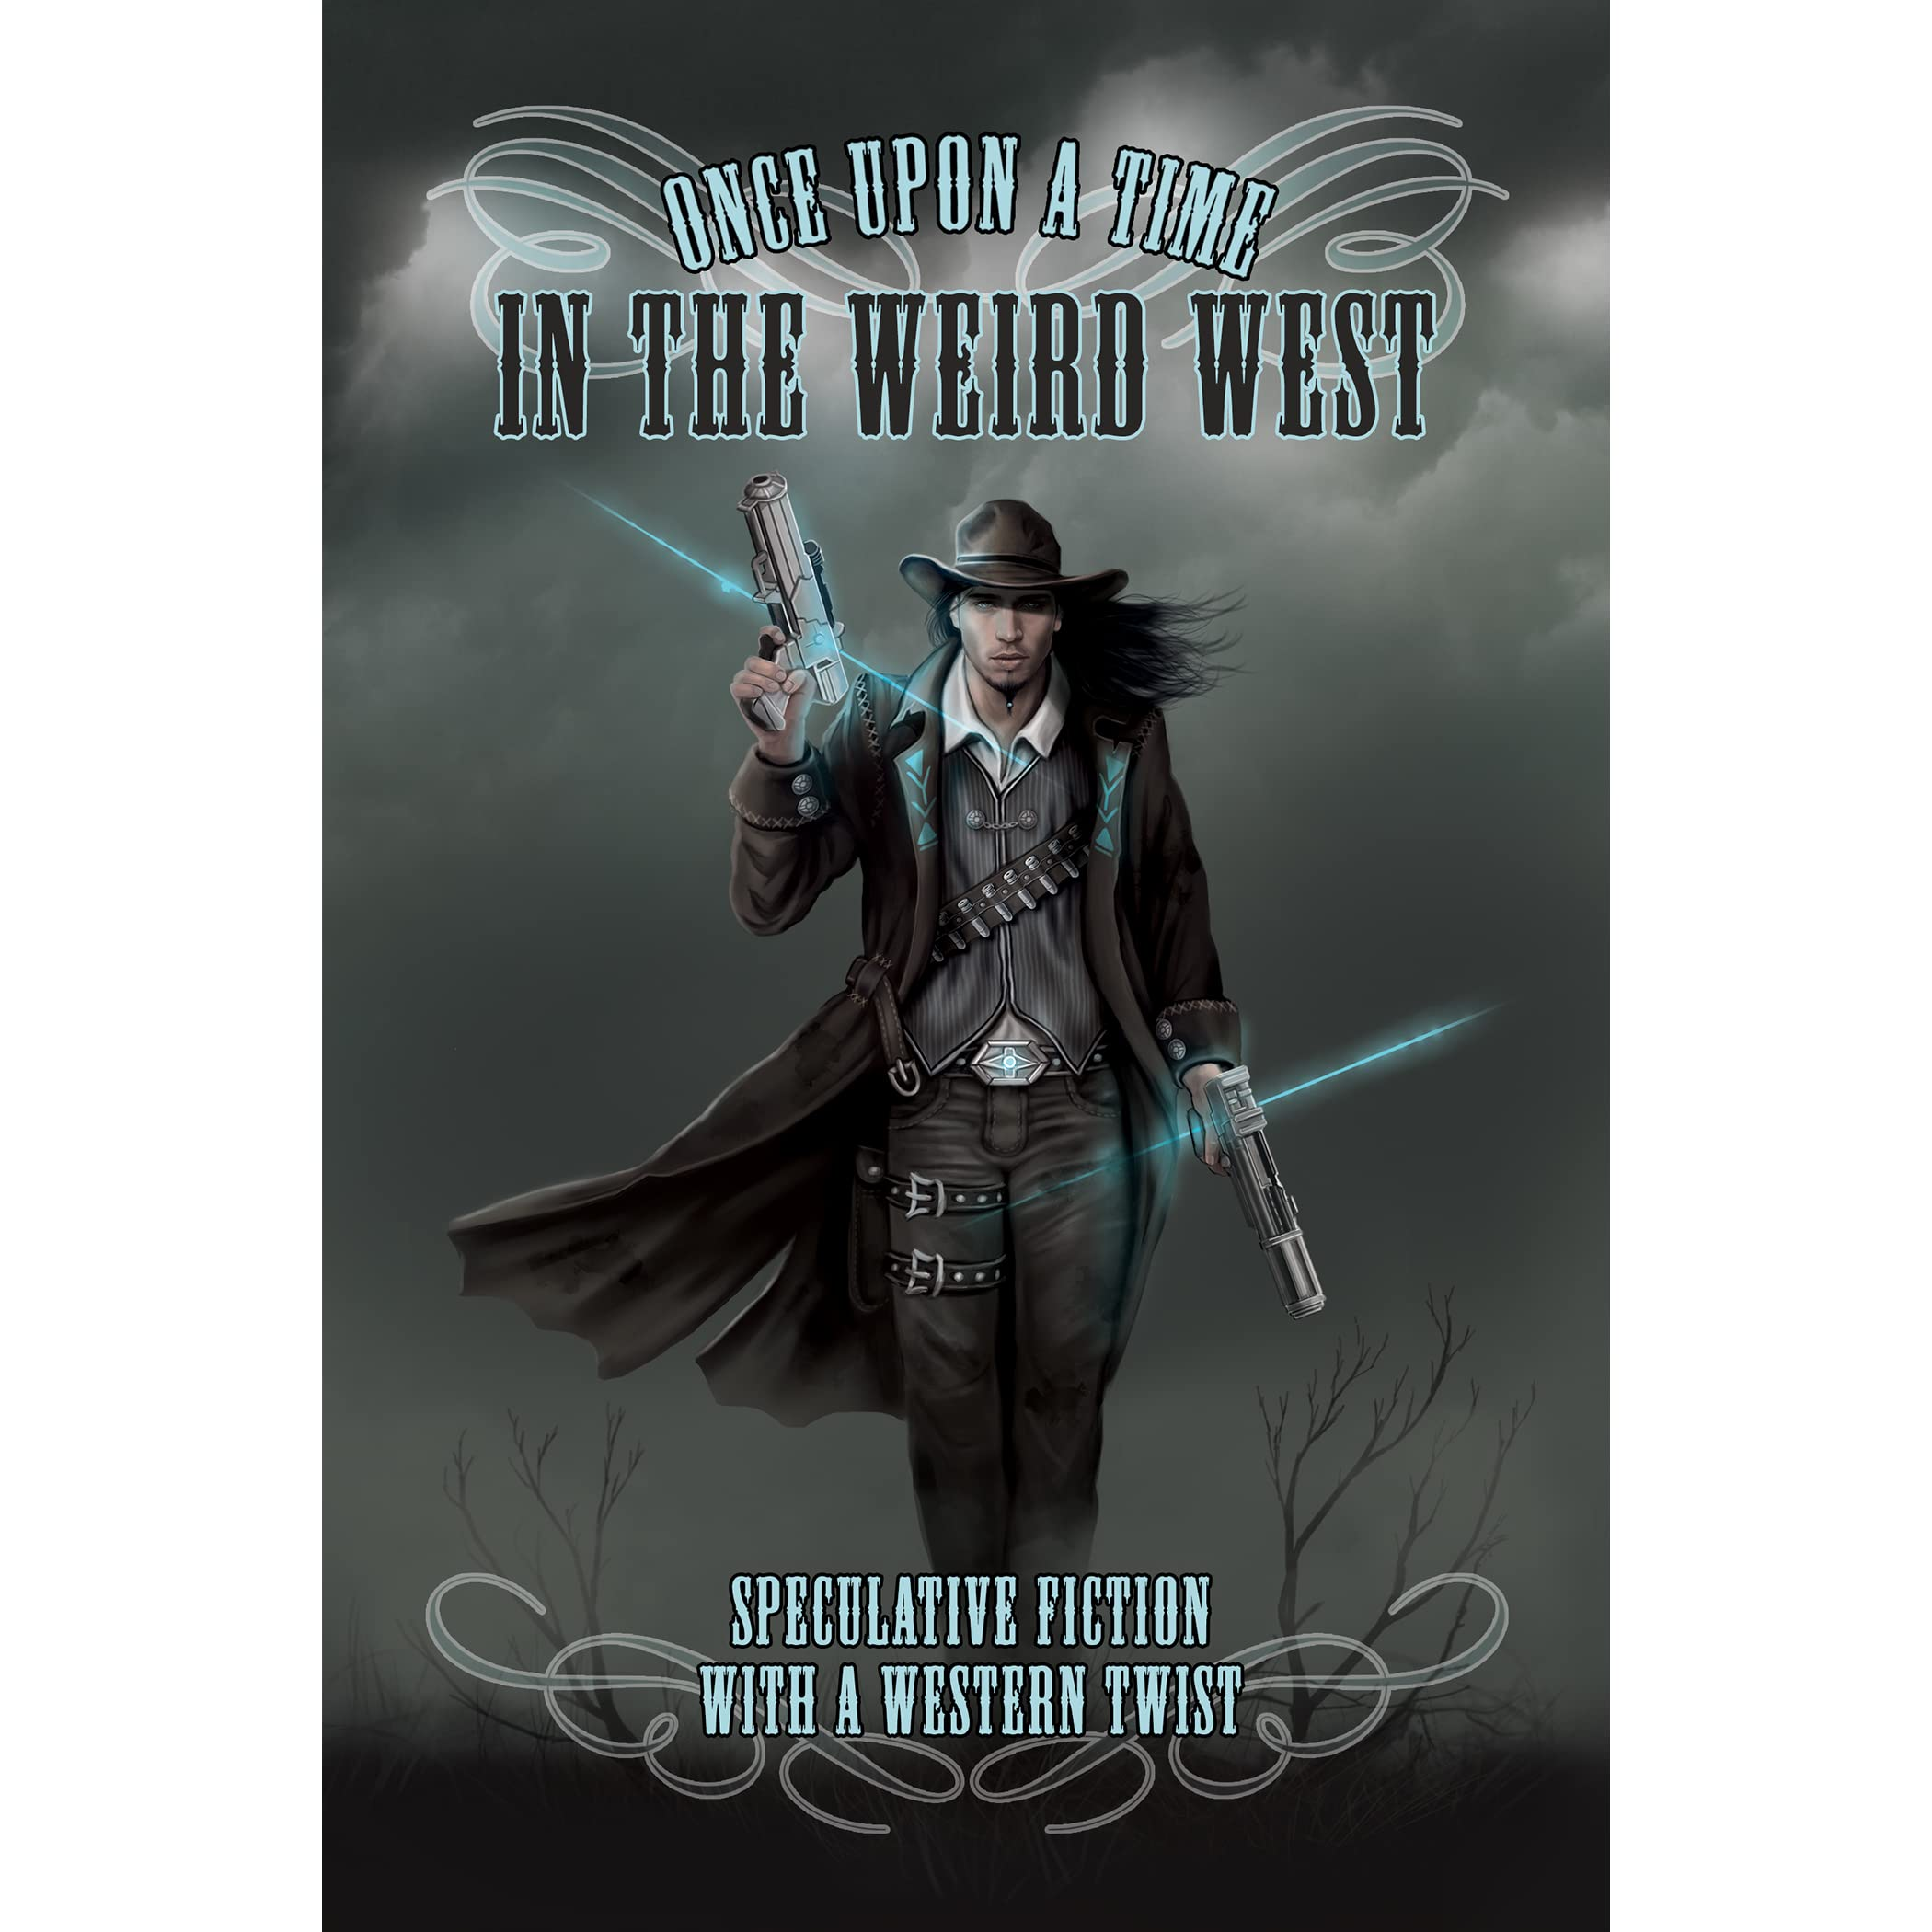 Once Upon A Time In The West: Once Upon A Time In The Weird West By Tricia Kristufek